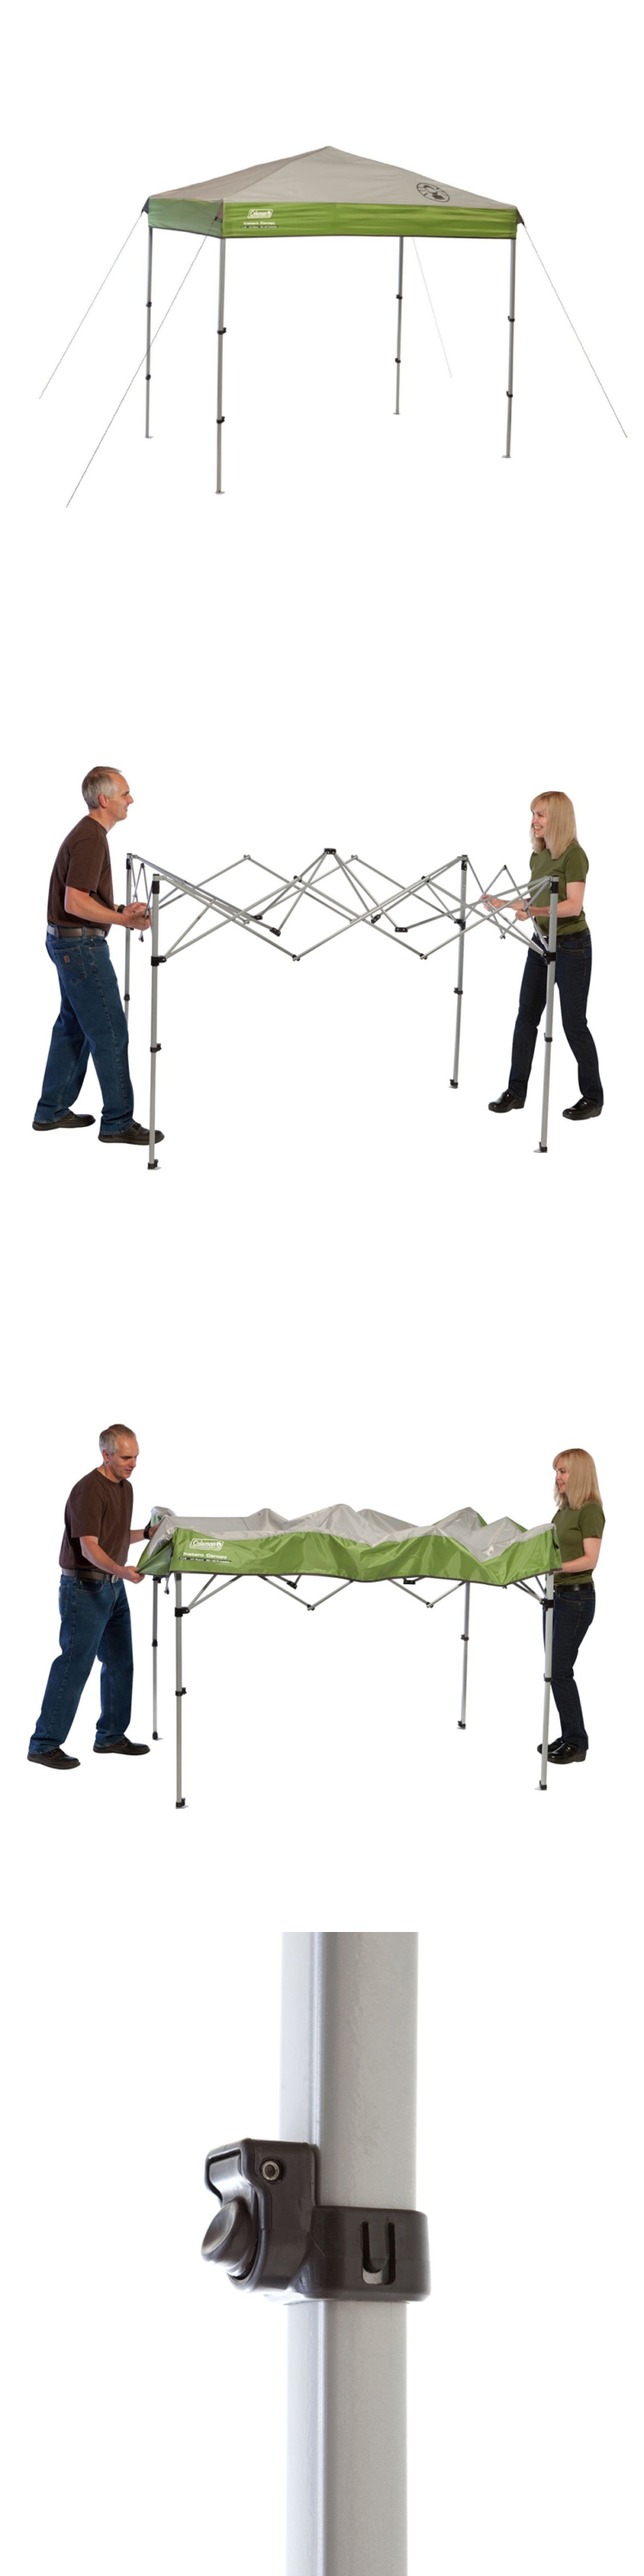 Canopies and Shelters 179011 Coleman 2000012221 Canopy -u003e BUY IT NOW ONLY $87.25  sc 1 st  Pinterest & Canopies and Shelters 179011: Coleman 2000012221 Canopy -u003e BUY IT ...